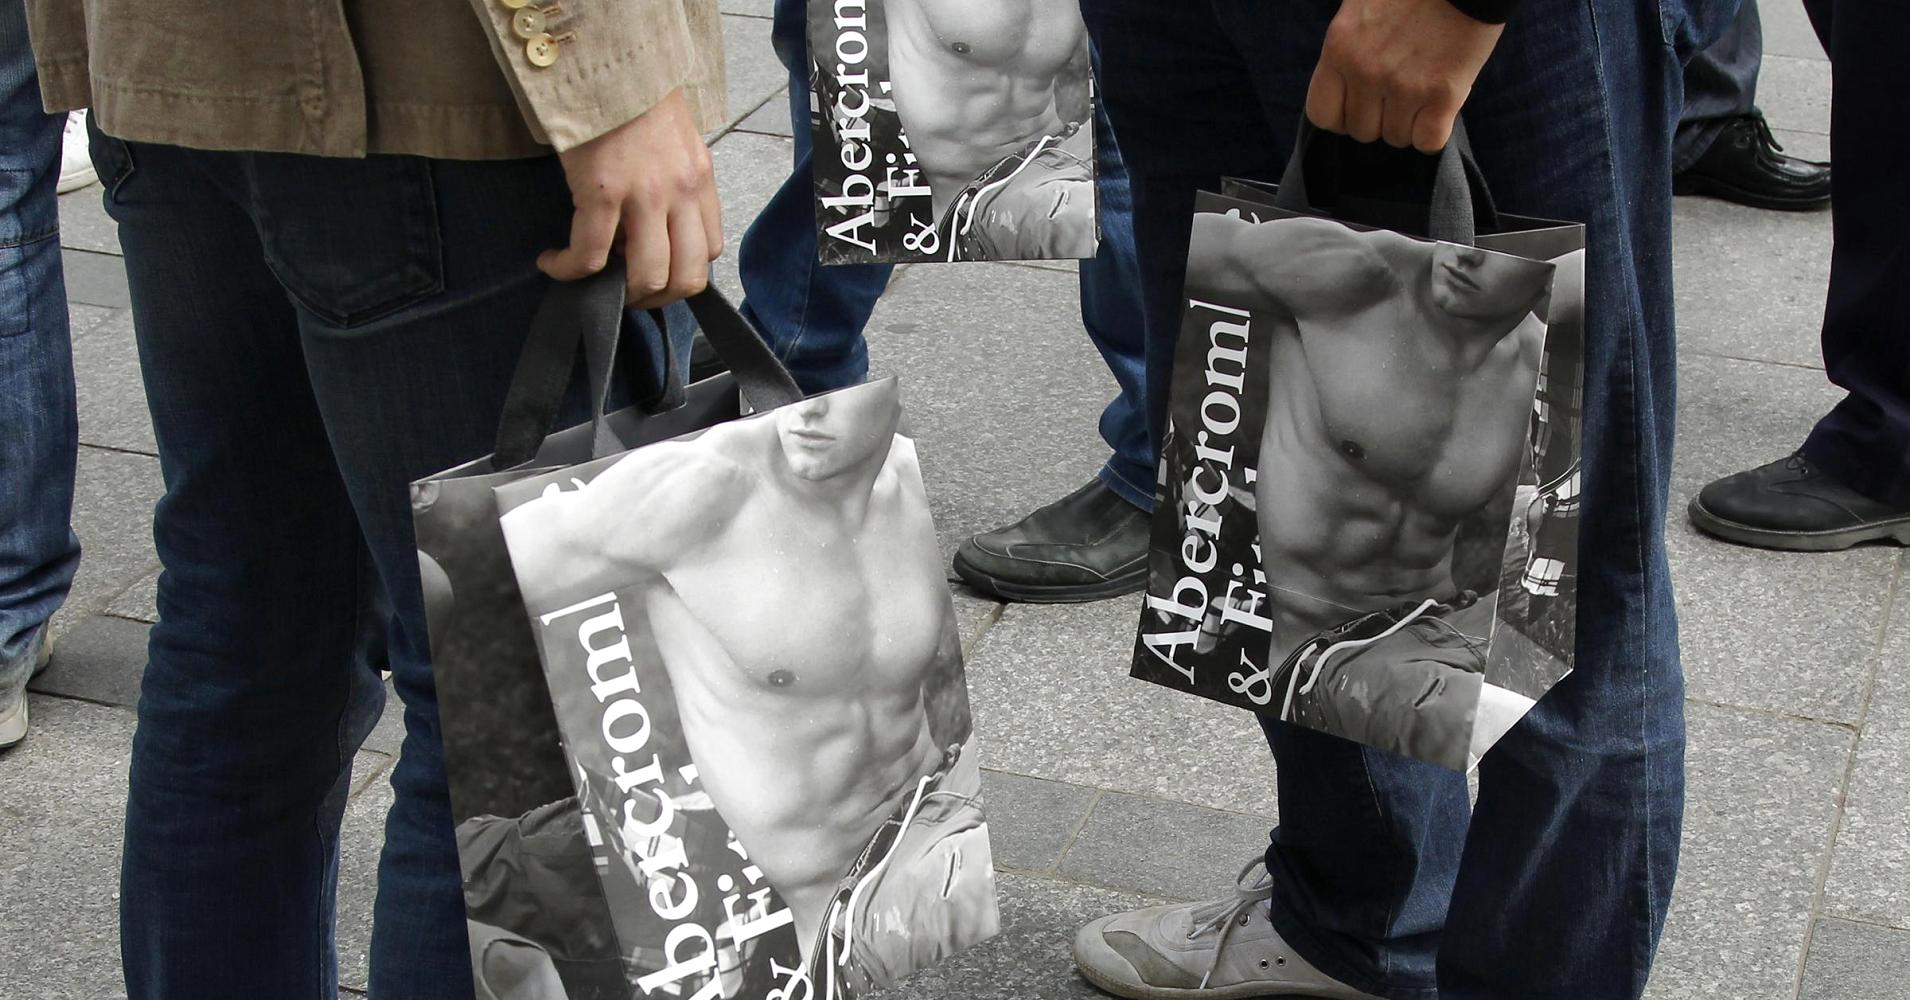 Abercrombie & Fitch boosts guidance, sending shares higher